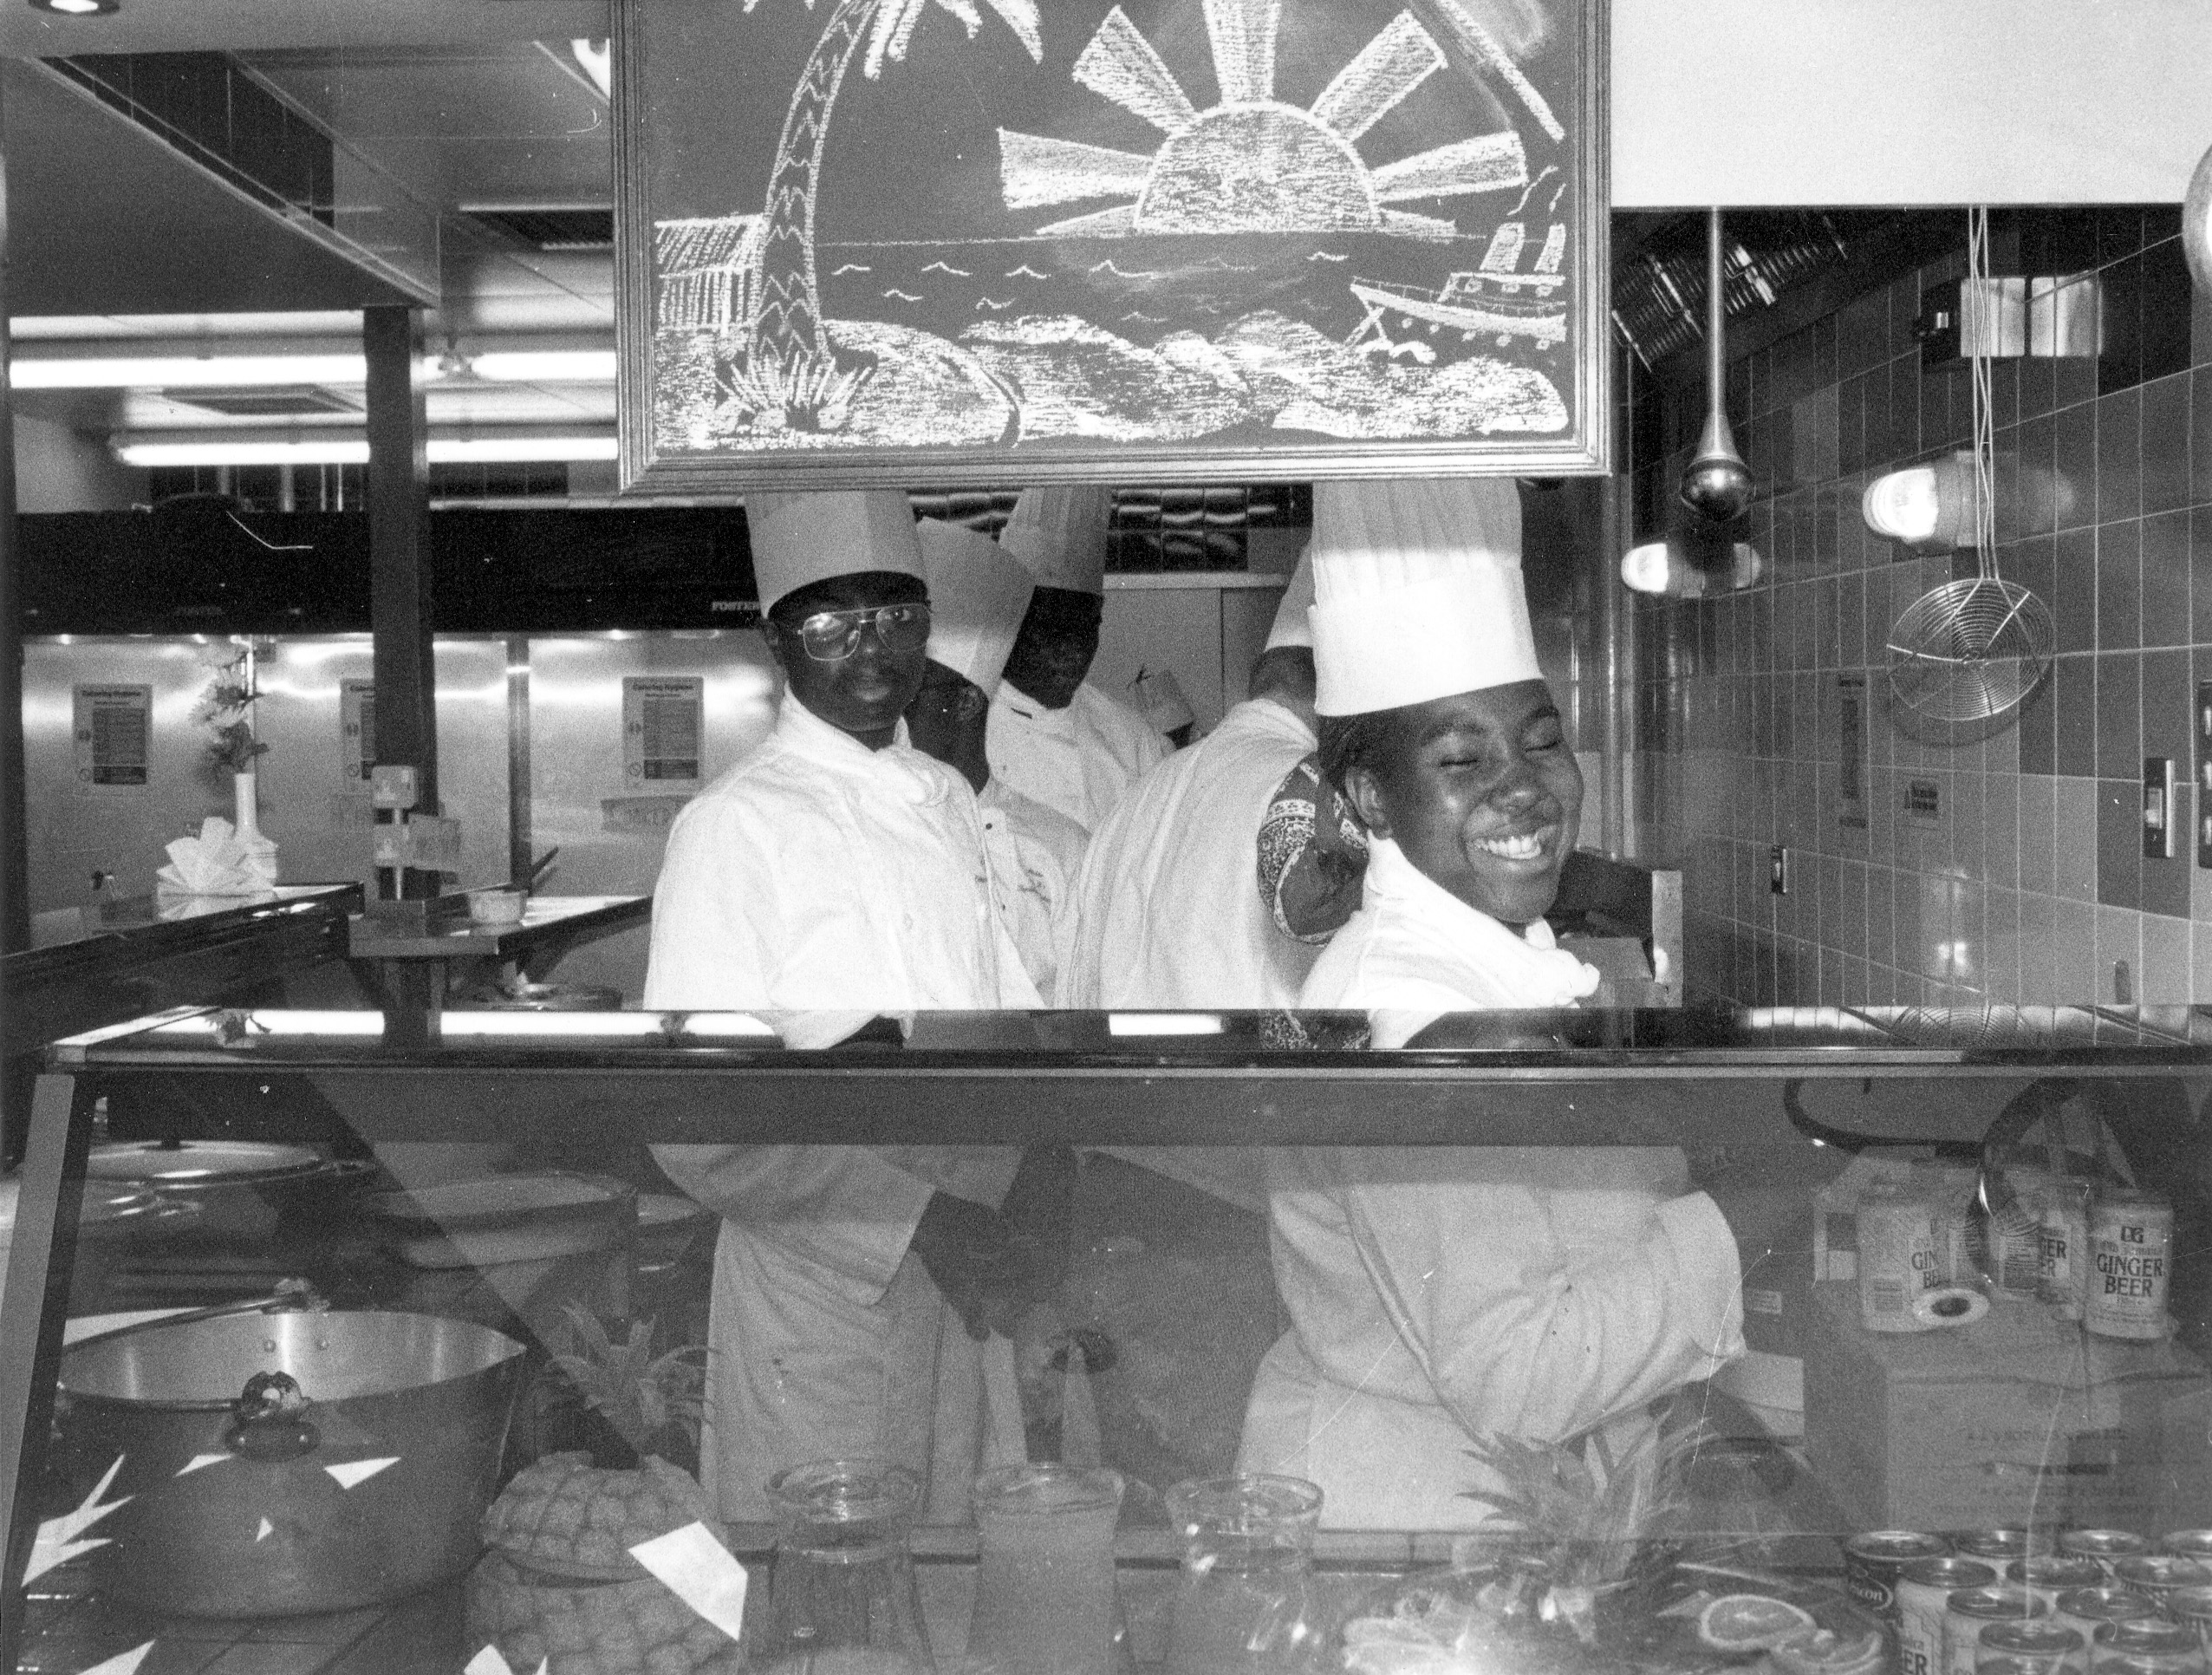 black and white photo of staff behind the counter of Dr. B's Caribbean Restaurant in 1980s